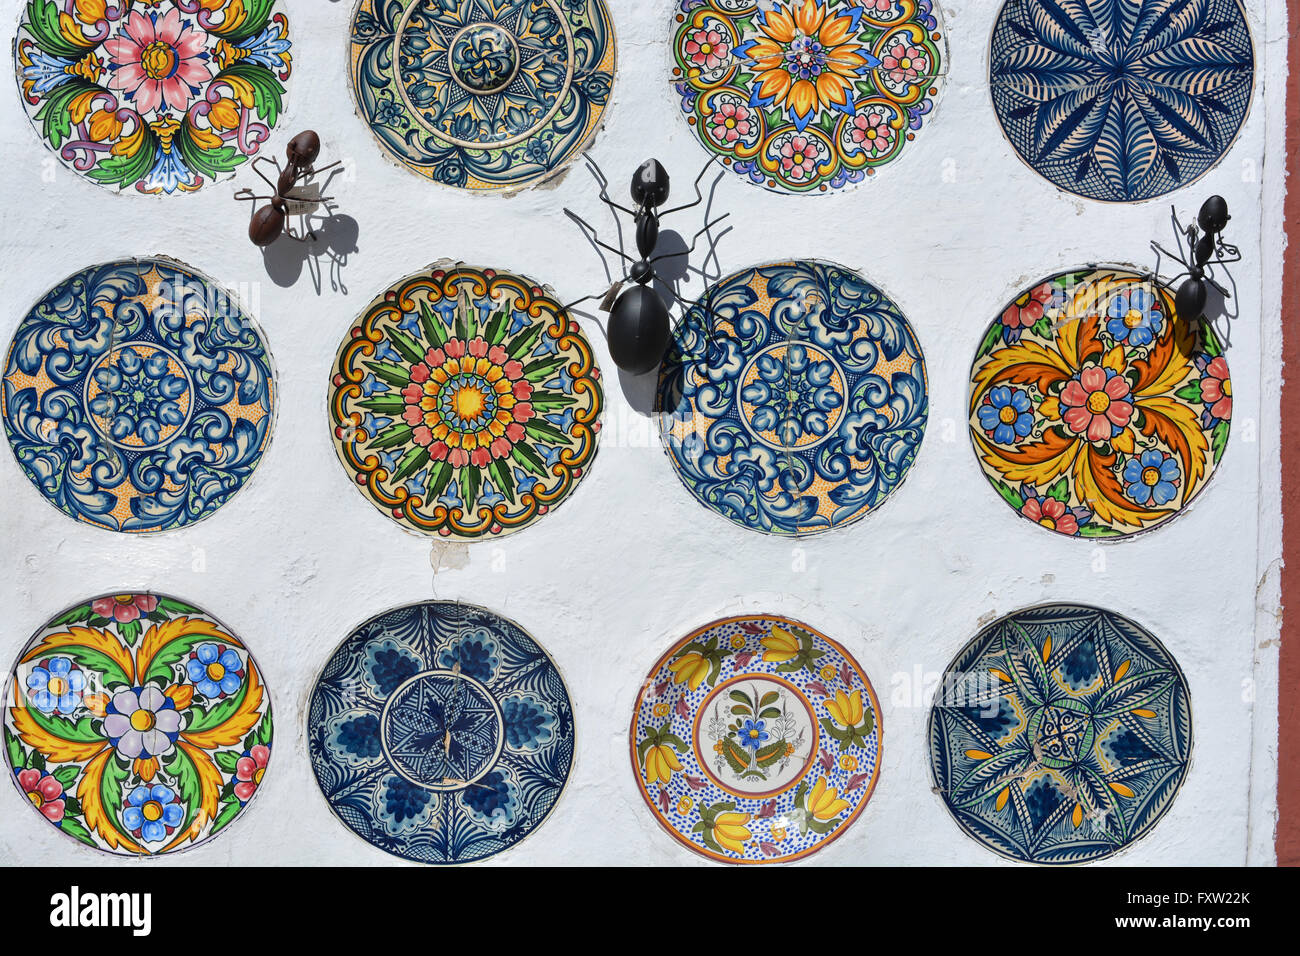 spain souvenir ceramic plates stockfotos spain souvenir ceramic plates bilder alamy. Black Bedroom Furniture Sets. Home Design Ideas